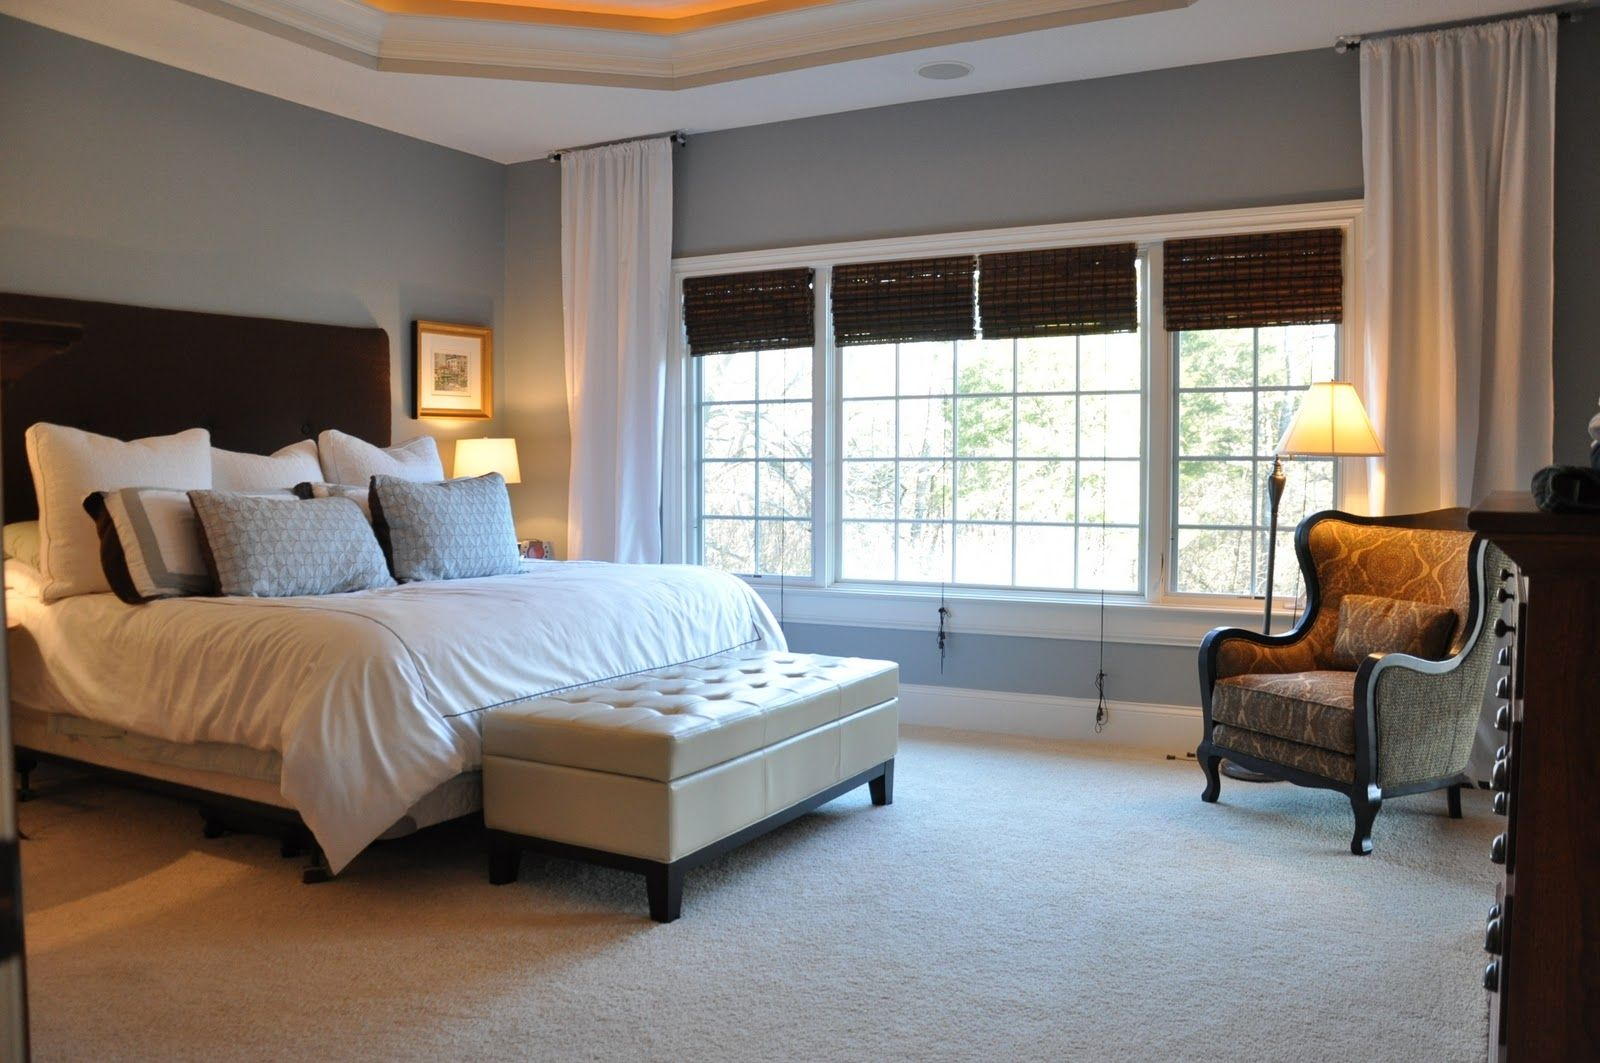 Master bedroom blue paint ideas - Blue Gray Bedroom Paint Ideas Grey Blue Bedroom Paint Colors Mark Cooper Research